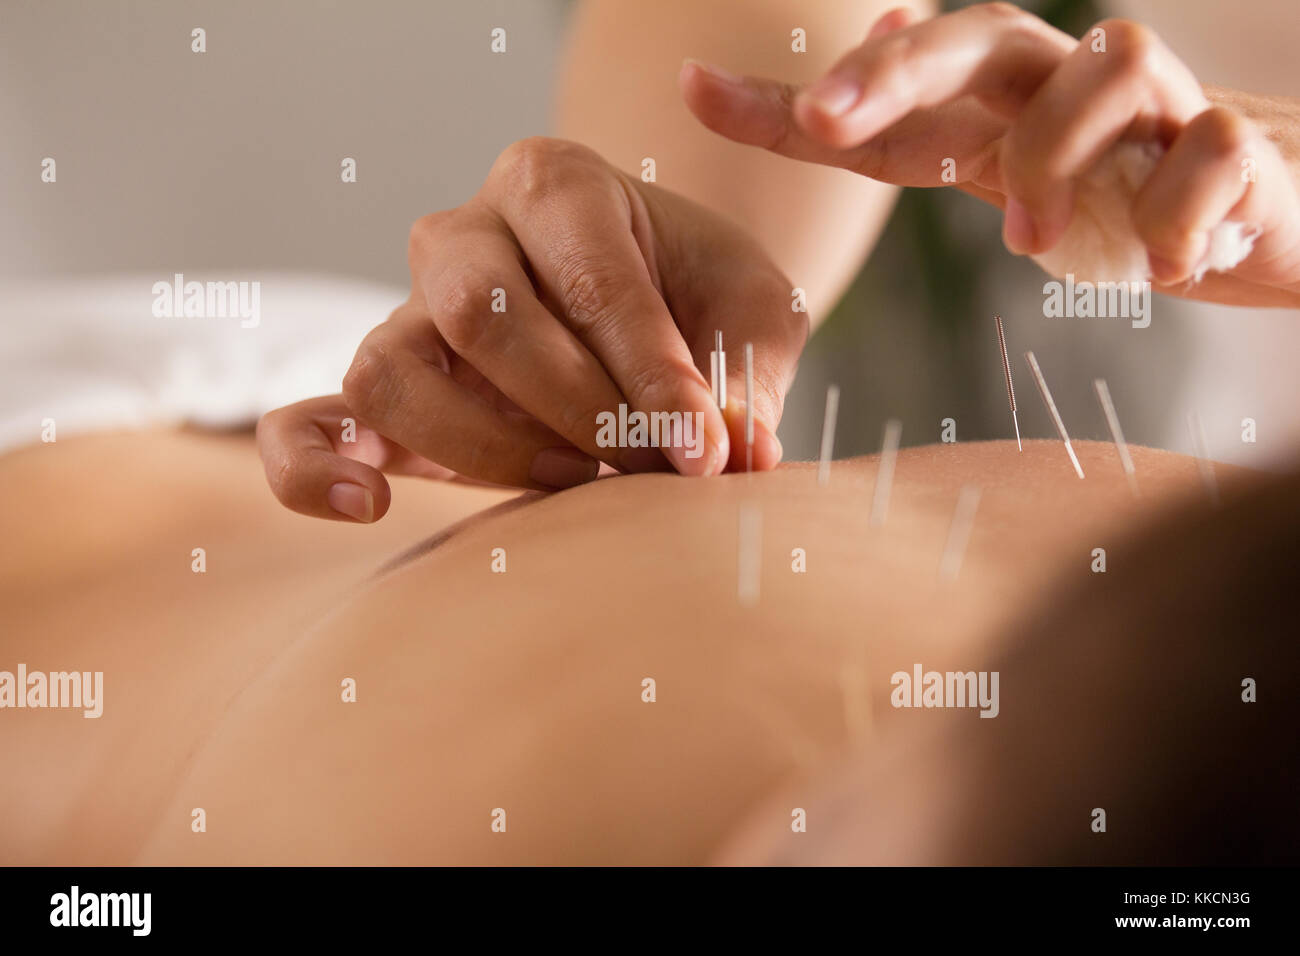 The doctor sticks needles into the girl's body on the acupuncture - close up Stock Photo